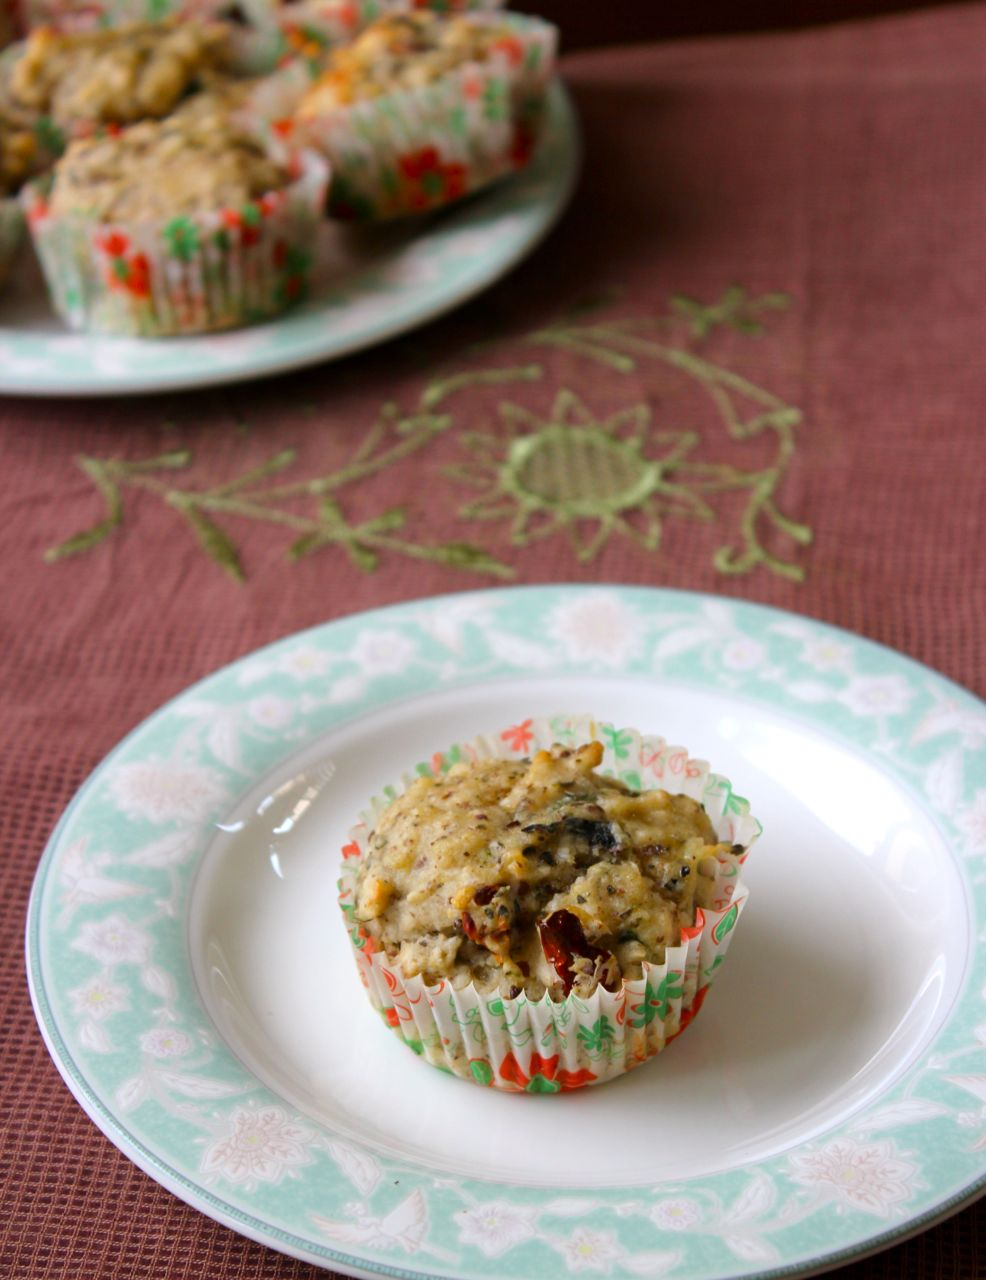 Eggless Savoury Muffins with Sun Dried Tomatoes, Cheese and Olives